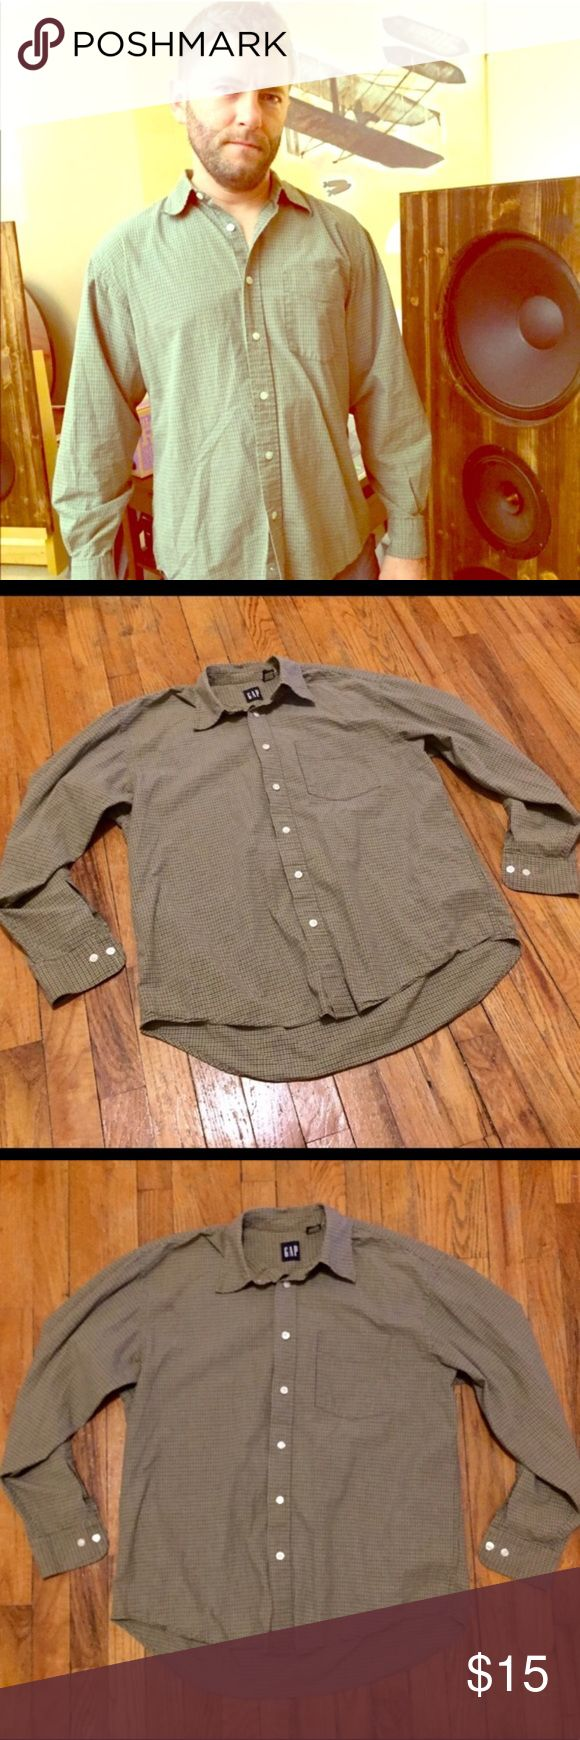 CCO Sale⚡️GAP Sage Green Button Down LS GAP Men's Button Down LS Top in Sage Green Plaid Print - Flawless. Size M & true to size.  Indian Summer Closet Clear Out Sale, Through Oct 31st!!! Marked down ALL summer items–along with most of the rest my things too!  Bundle Your Likes for serious savings!  Bundles still get 15% More Off & a FREE Gift! Ship Same or Next Day! Questions? Just reach out!  Happy Poshing! 🌞 GAP Shirts